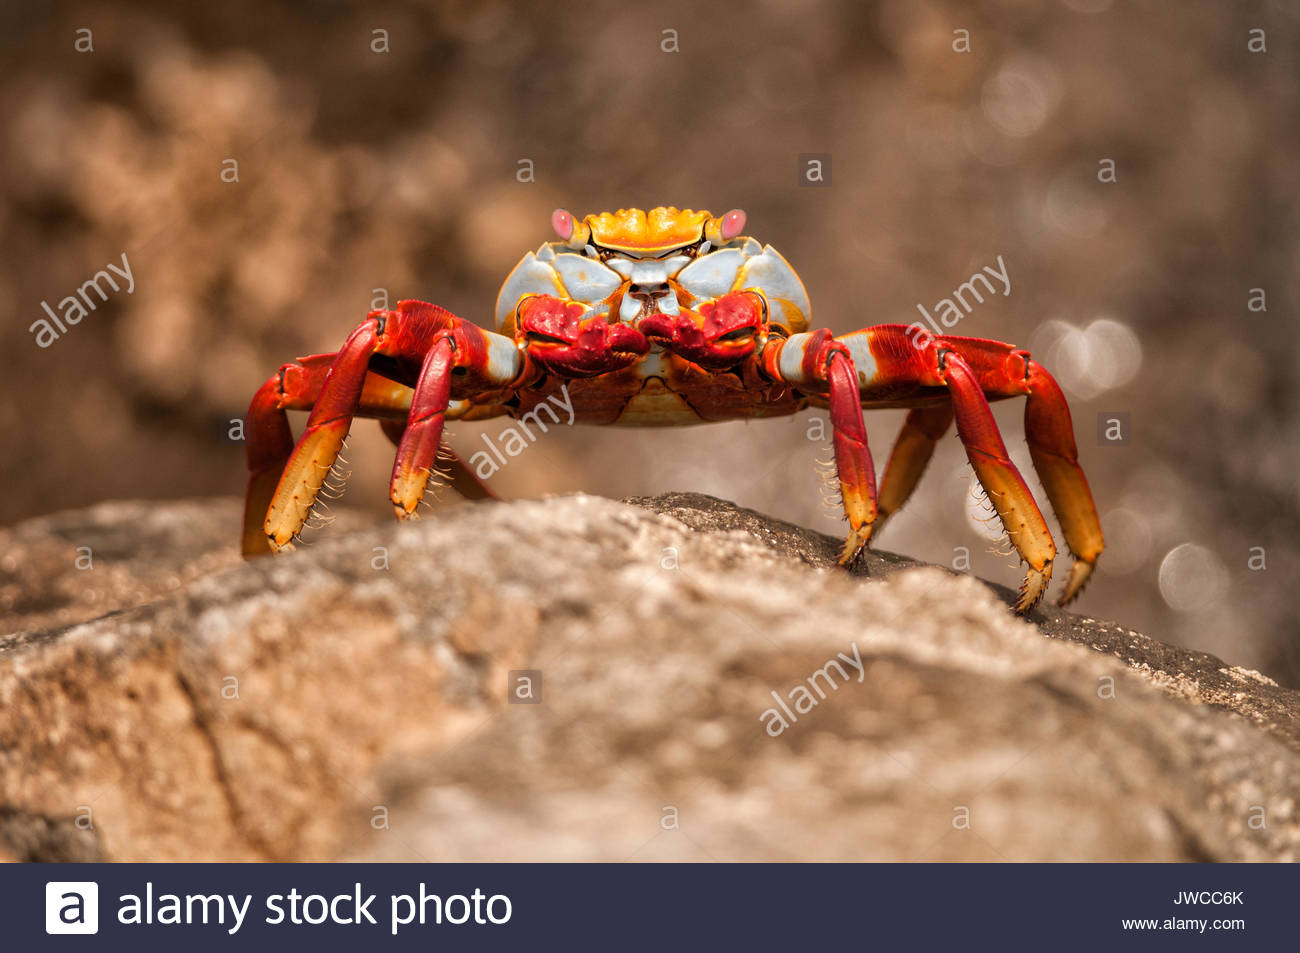 A red rock crab or Sally lightfoot crab,Grapsus grapsus. - Stock Image